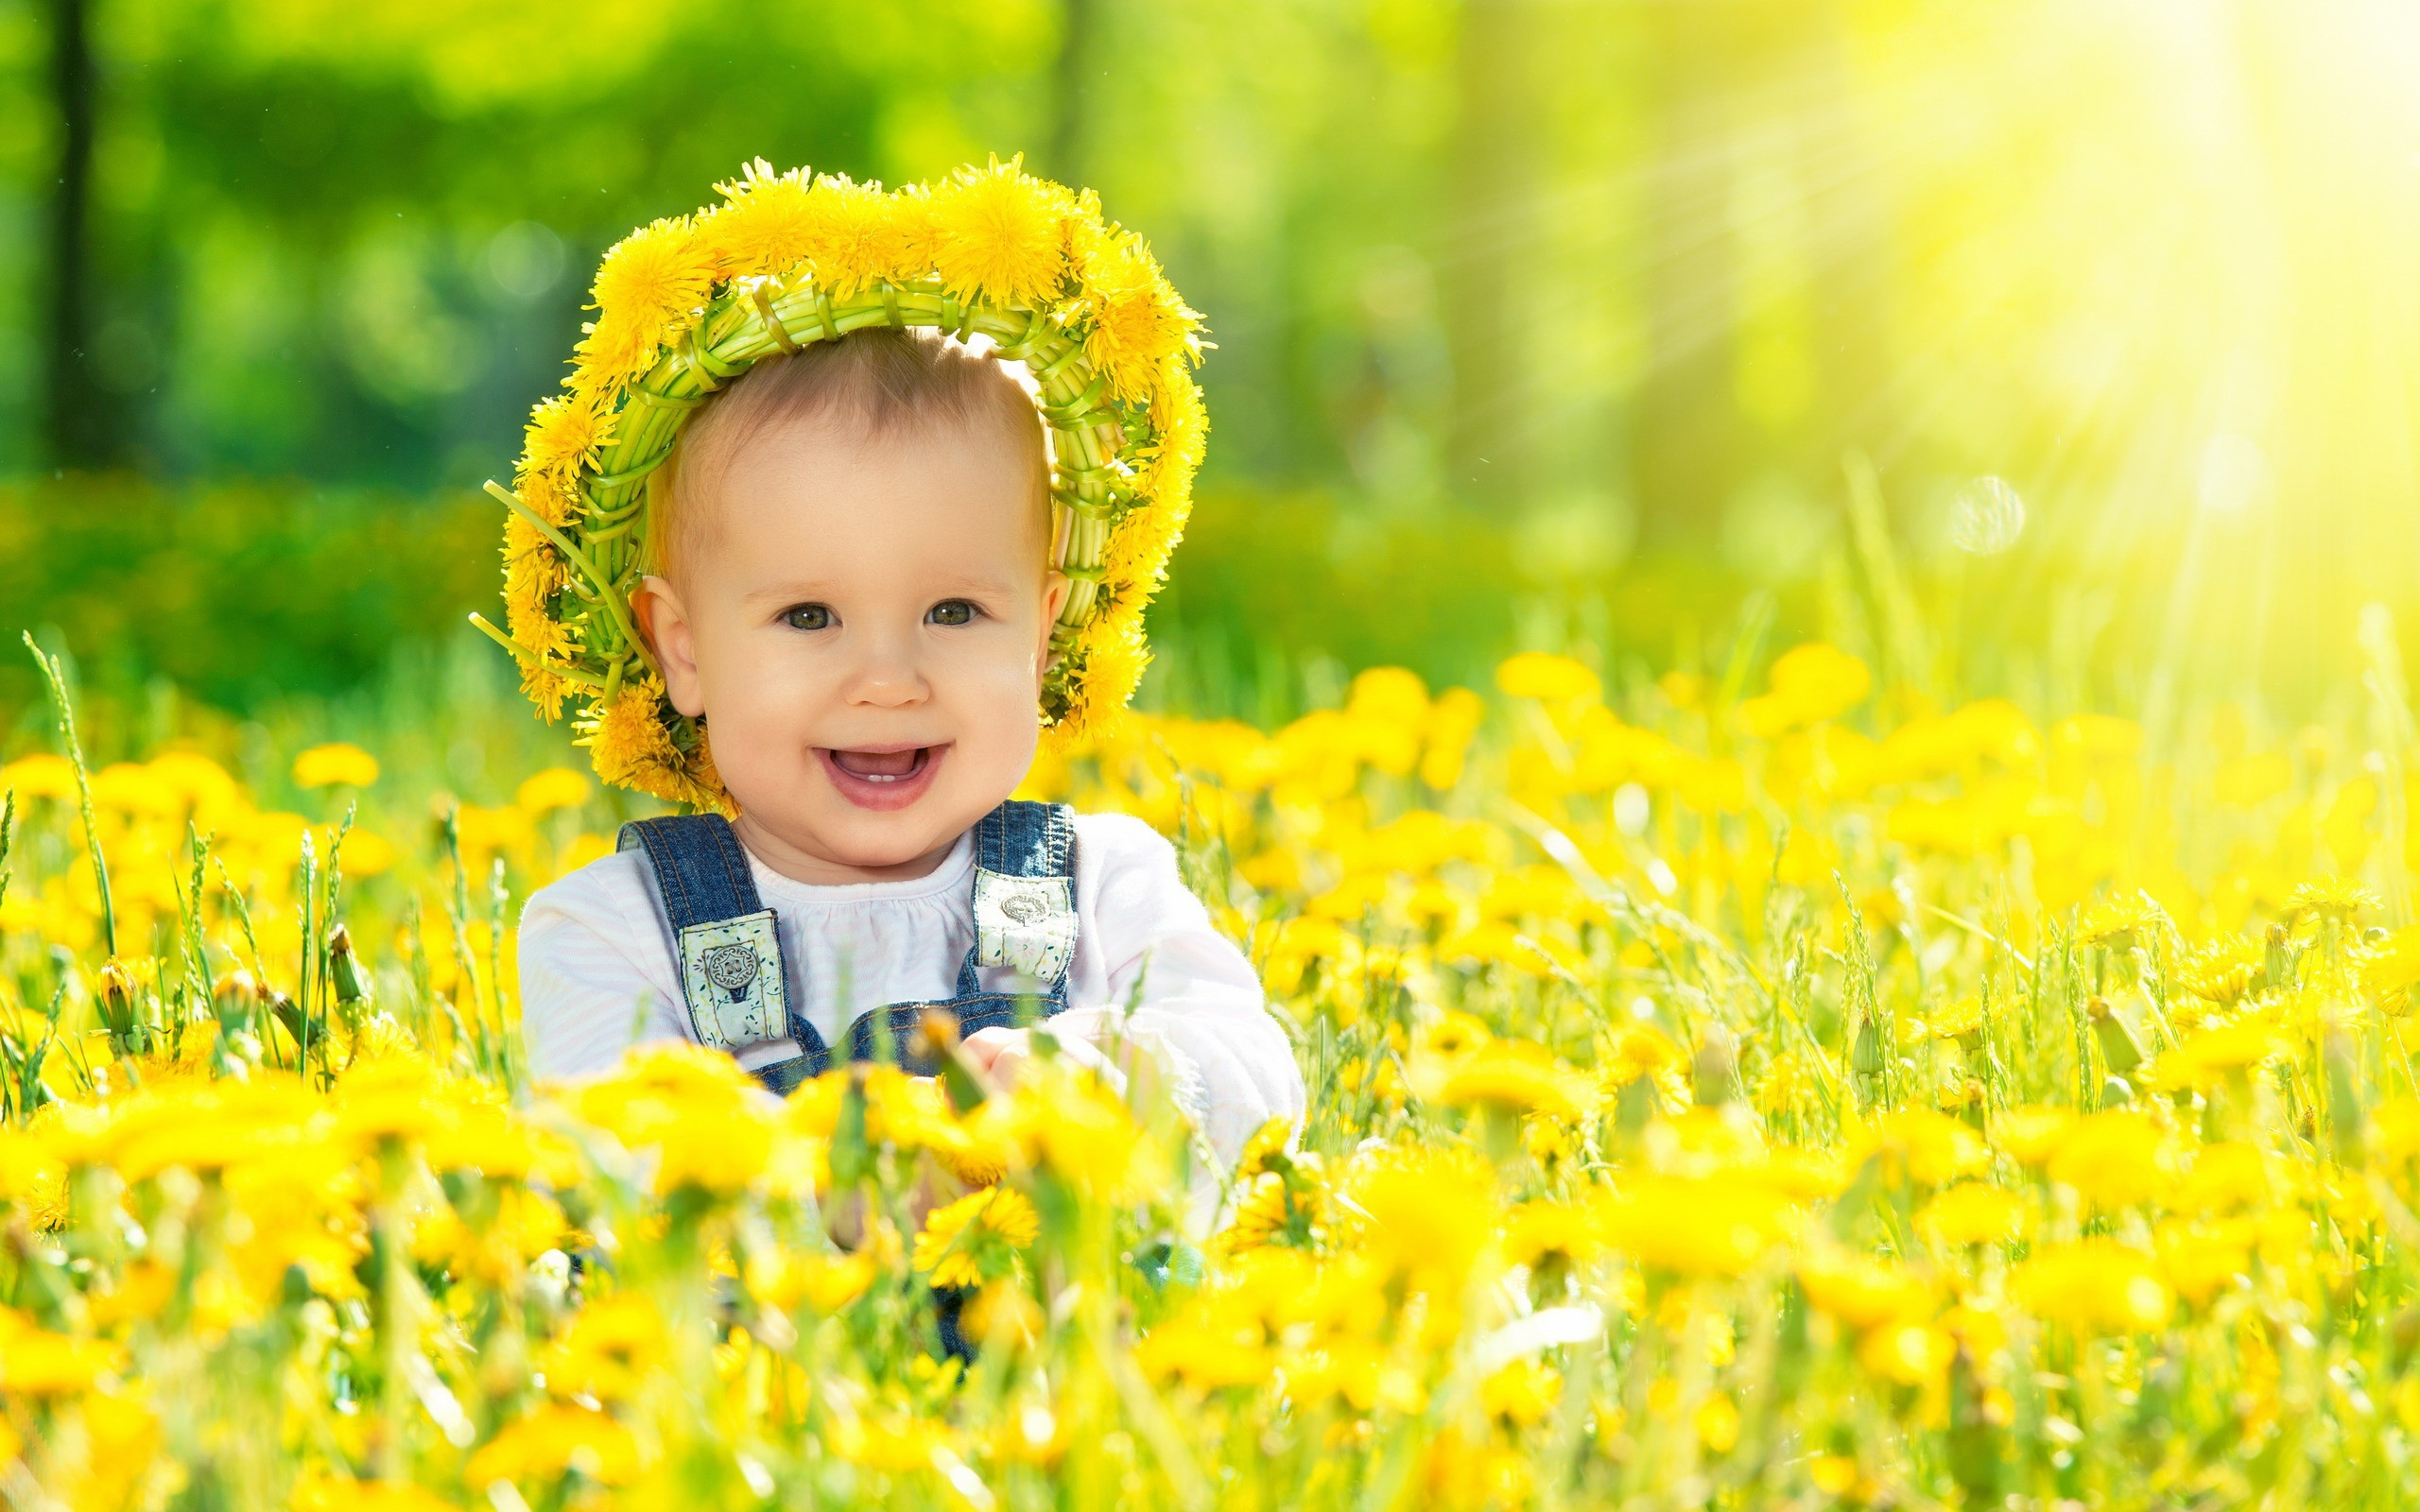 Happy Baby Wallpaper | www.pixshark.com - Images Galleries ...